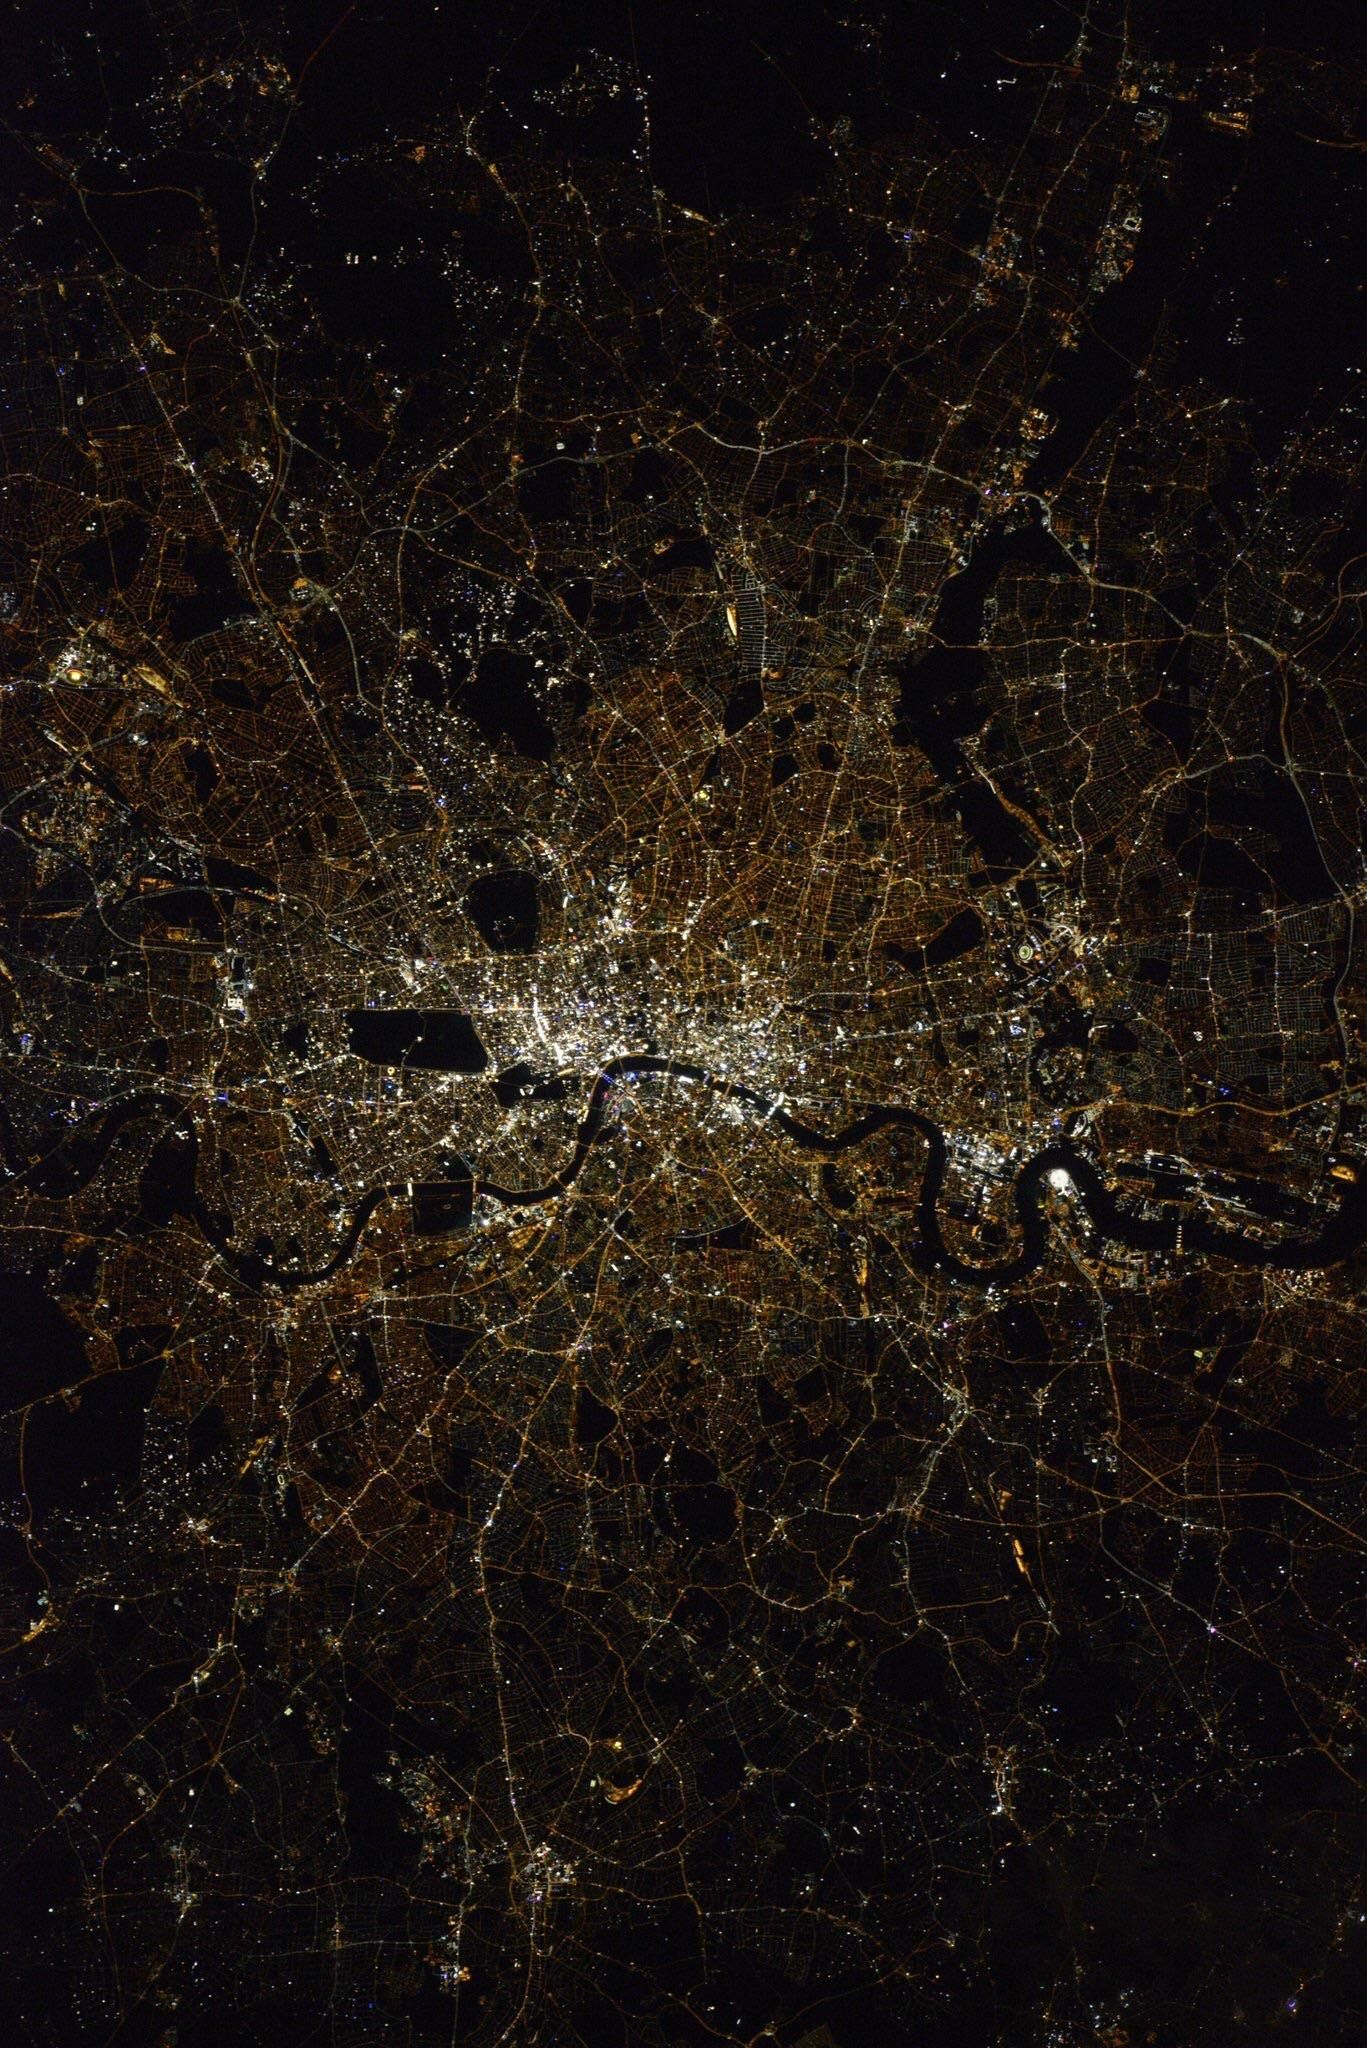 @GoogleFacts : London from the International Space Station - By Astronaut Shane Kimbroug https://t.co/5At0Qkdv2P